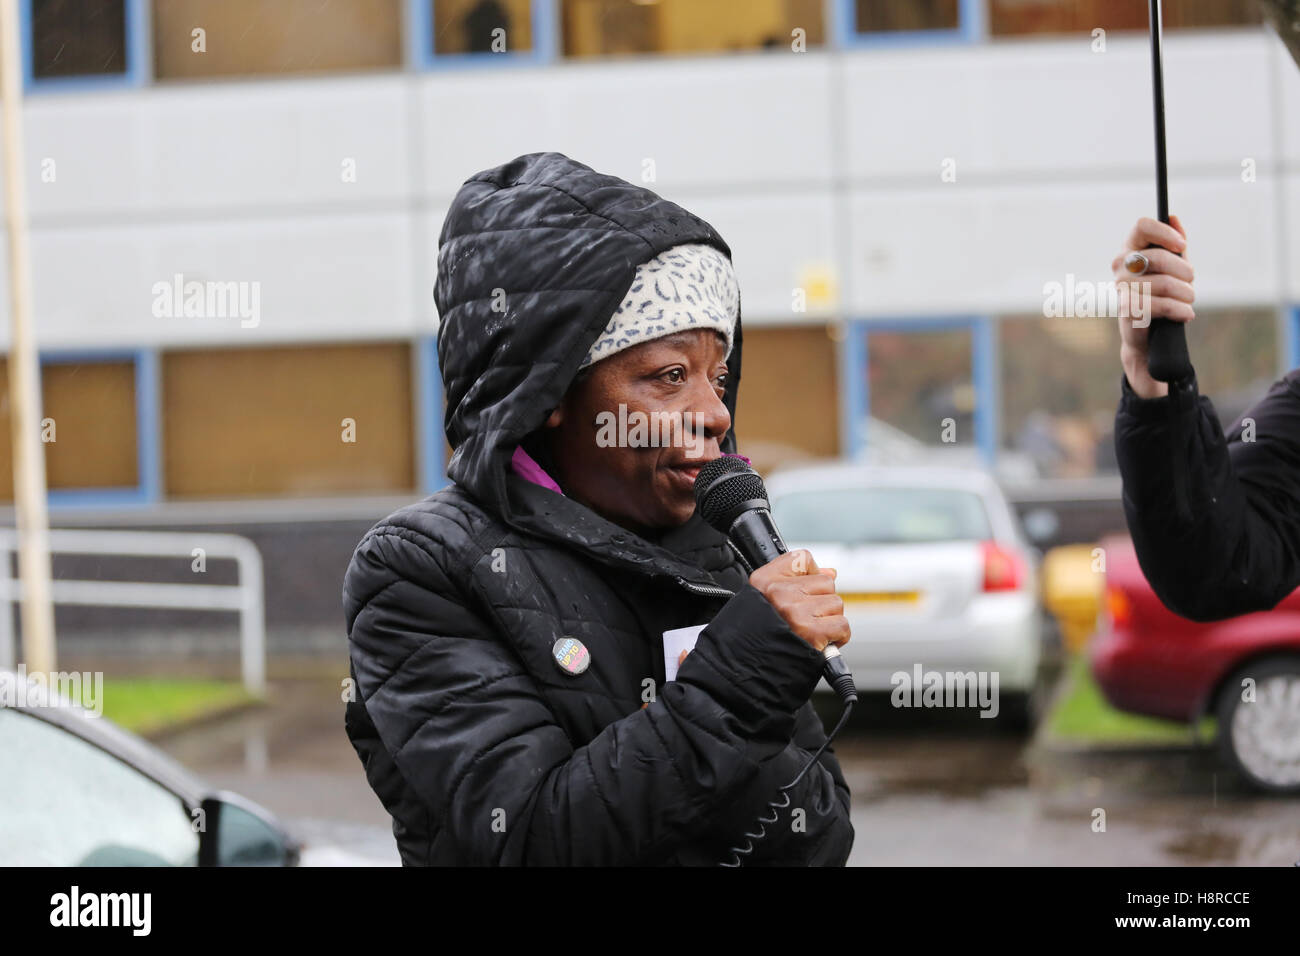 Salford, UK. 16th November, 2016. Campaigners support Dianne Ngoza, a Zambian national, who has lived in the UK - Stock Image